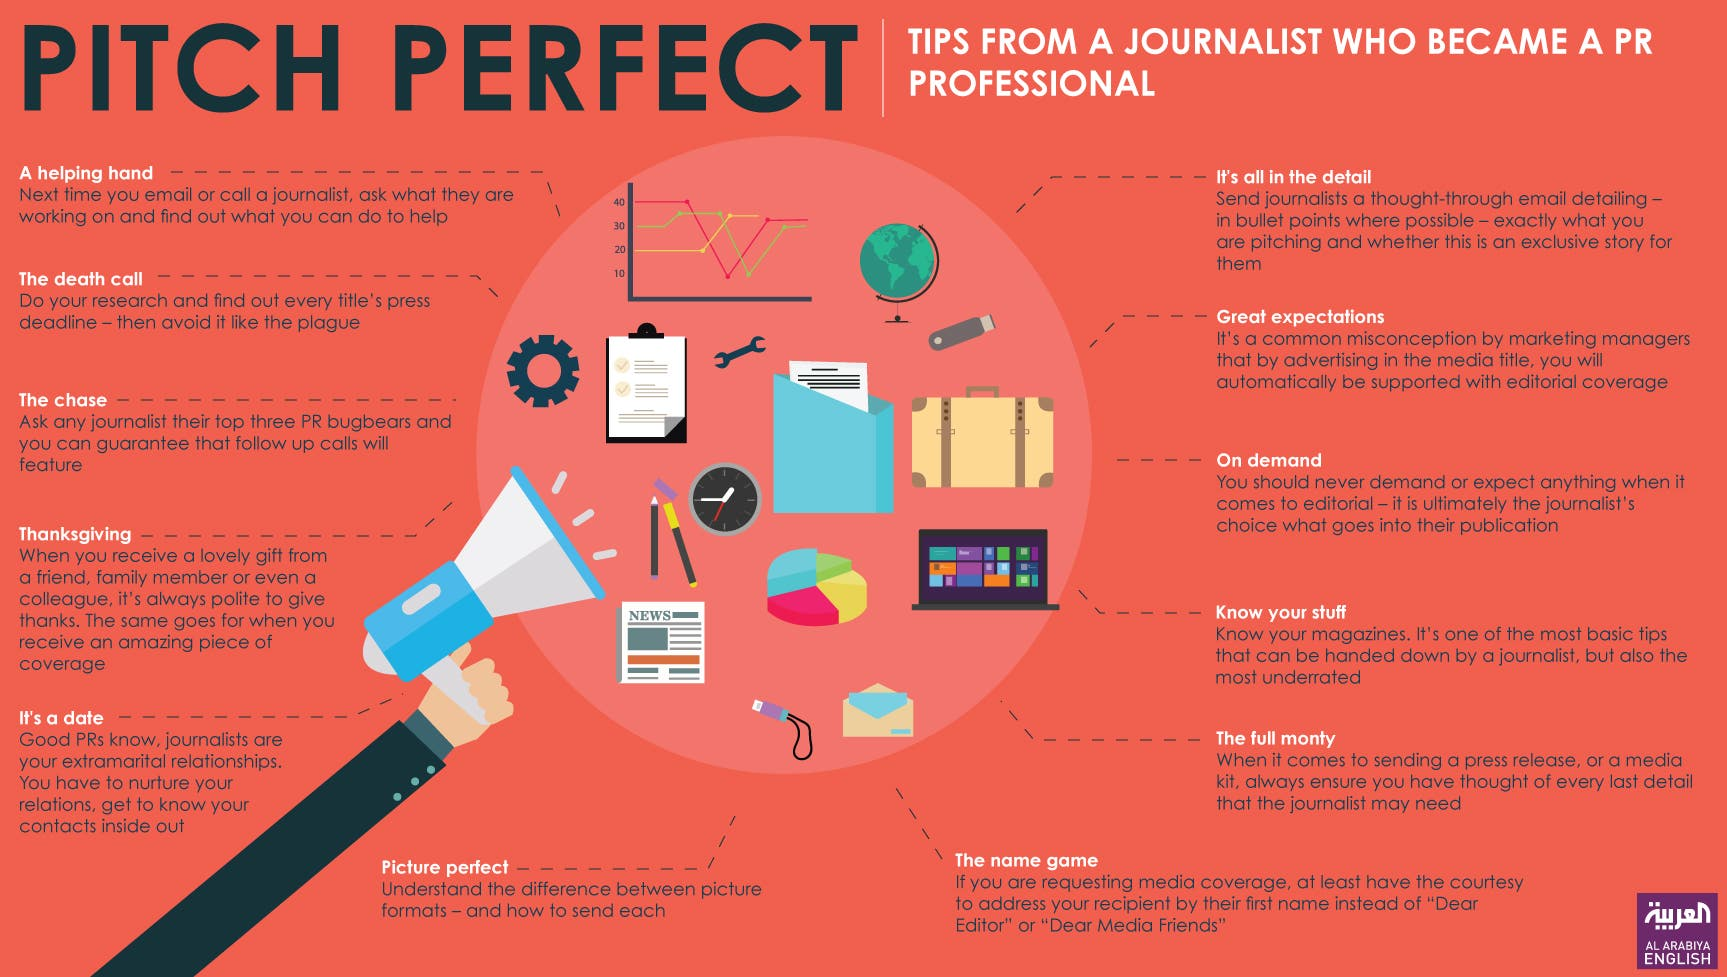 Tips from a journalist who became a PR professional